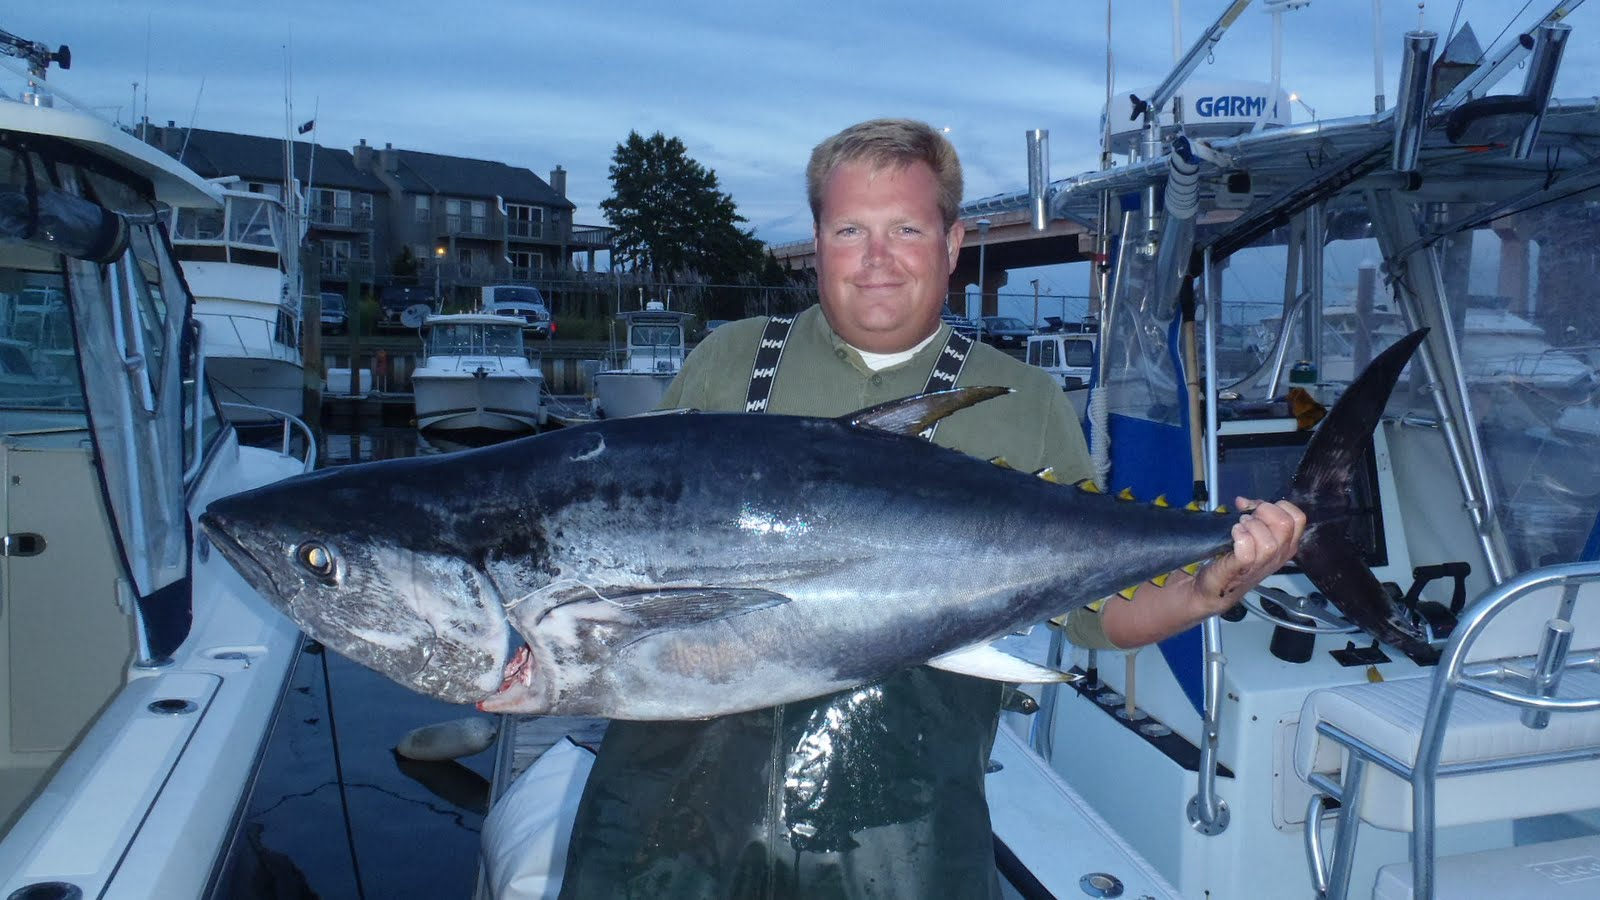 Shark inlet charters belmar nj fishing charter reports for Tuna fishing charters nj